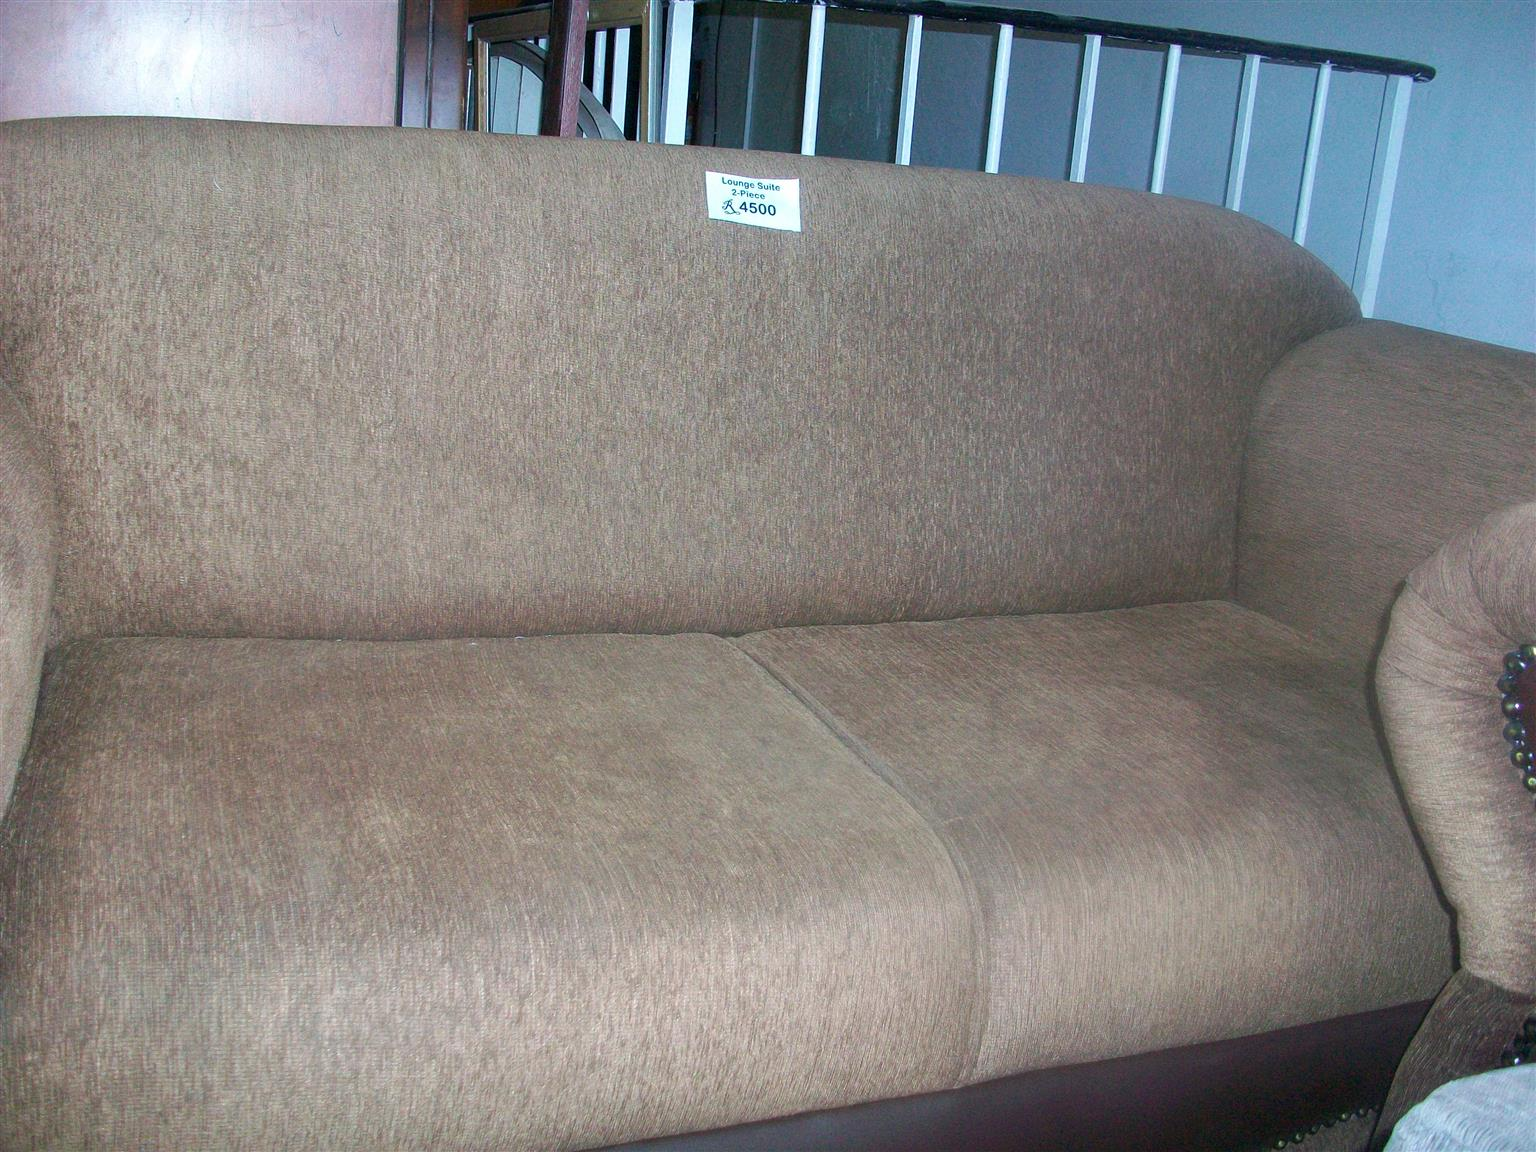 2-Seater Corduroy Couch...2-units available